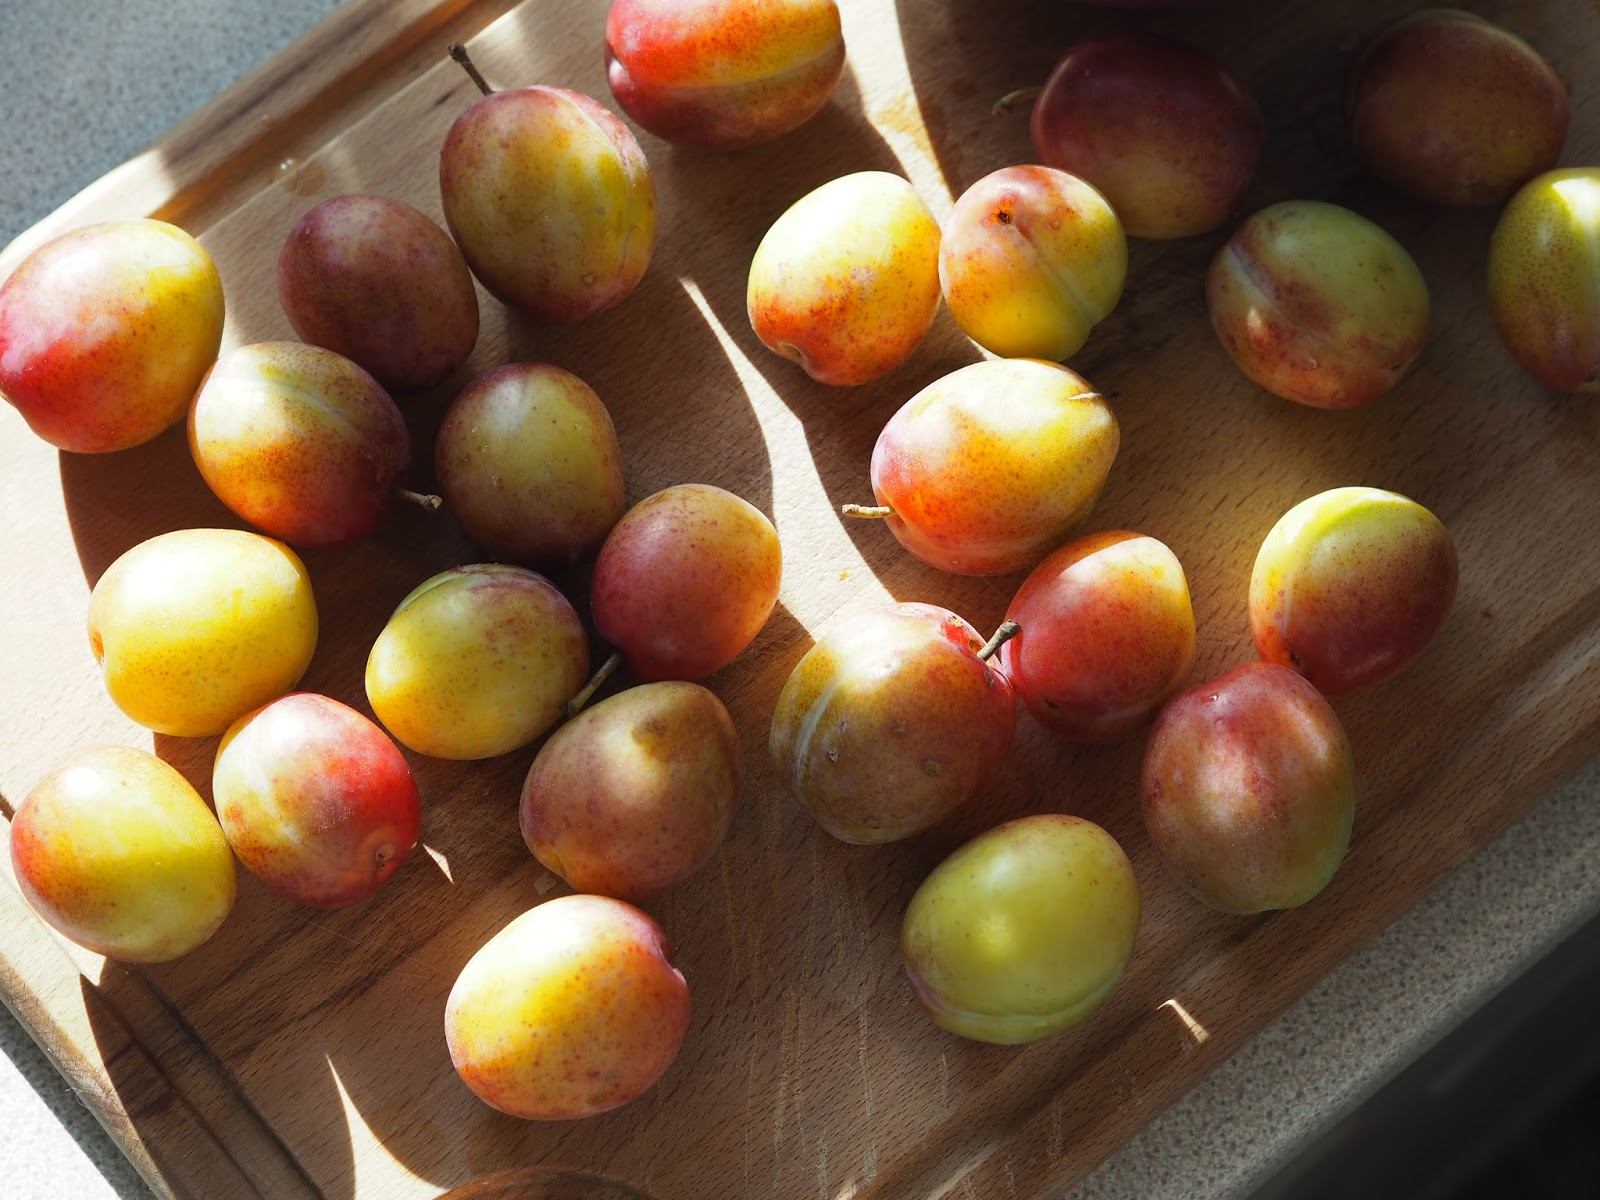 Plums on the chopping board